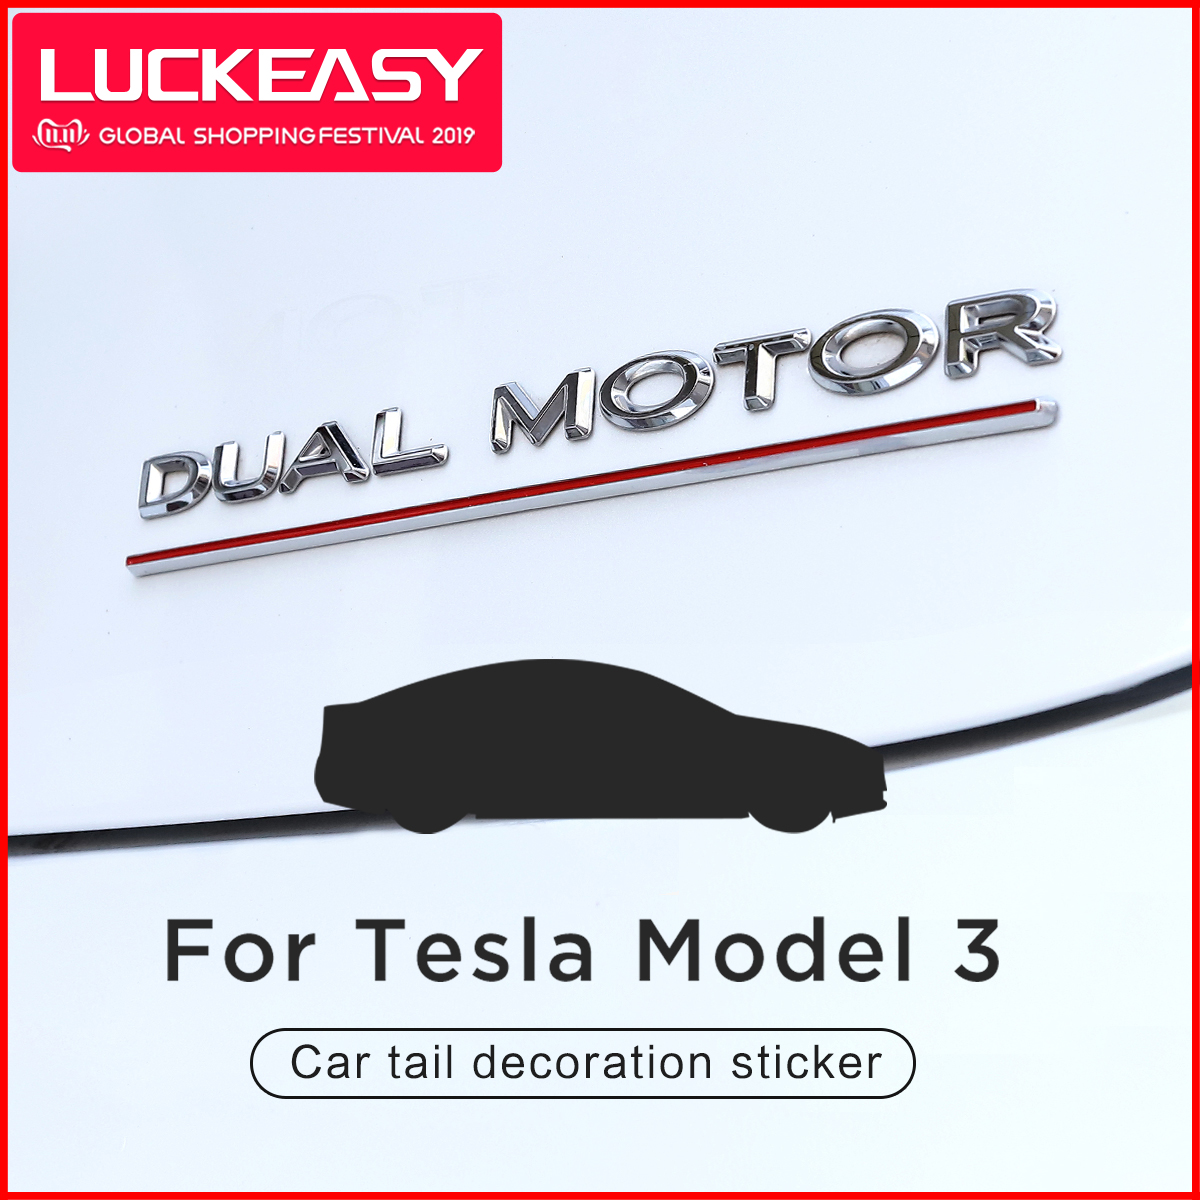 LUCKEASY Car Tail Decoration Sticker For Tesla Model 3 2017 2018 2019 High Performance Metal Standard Car Tail Sticker